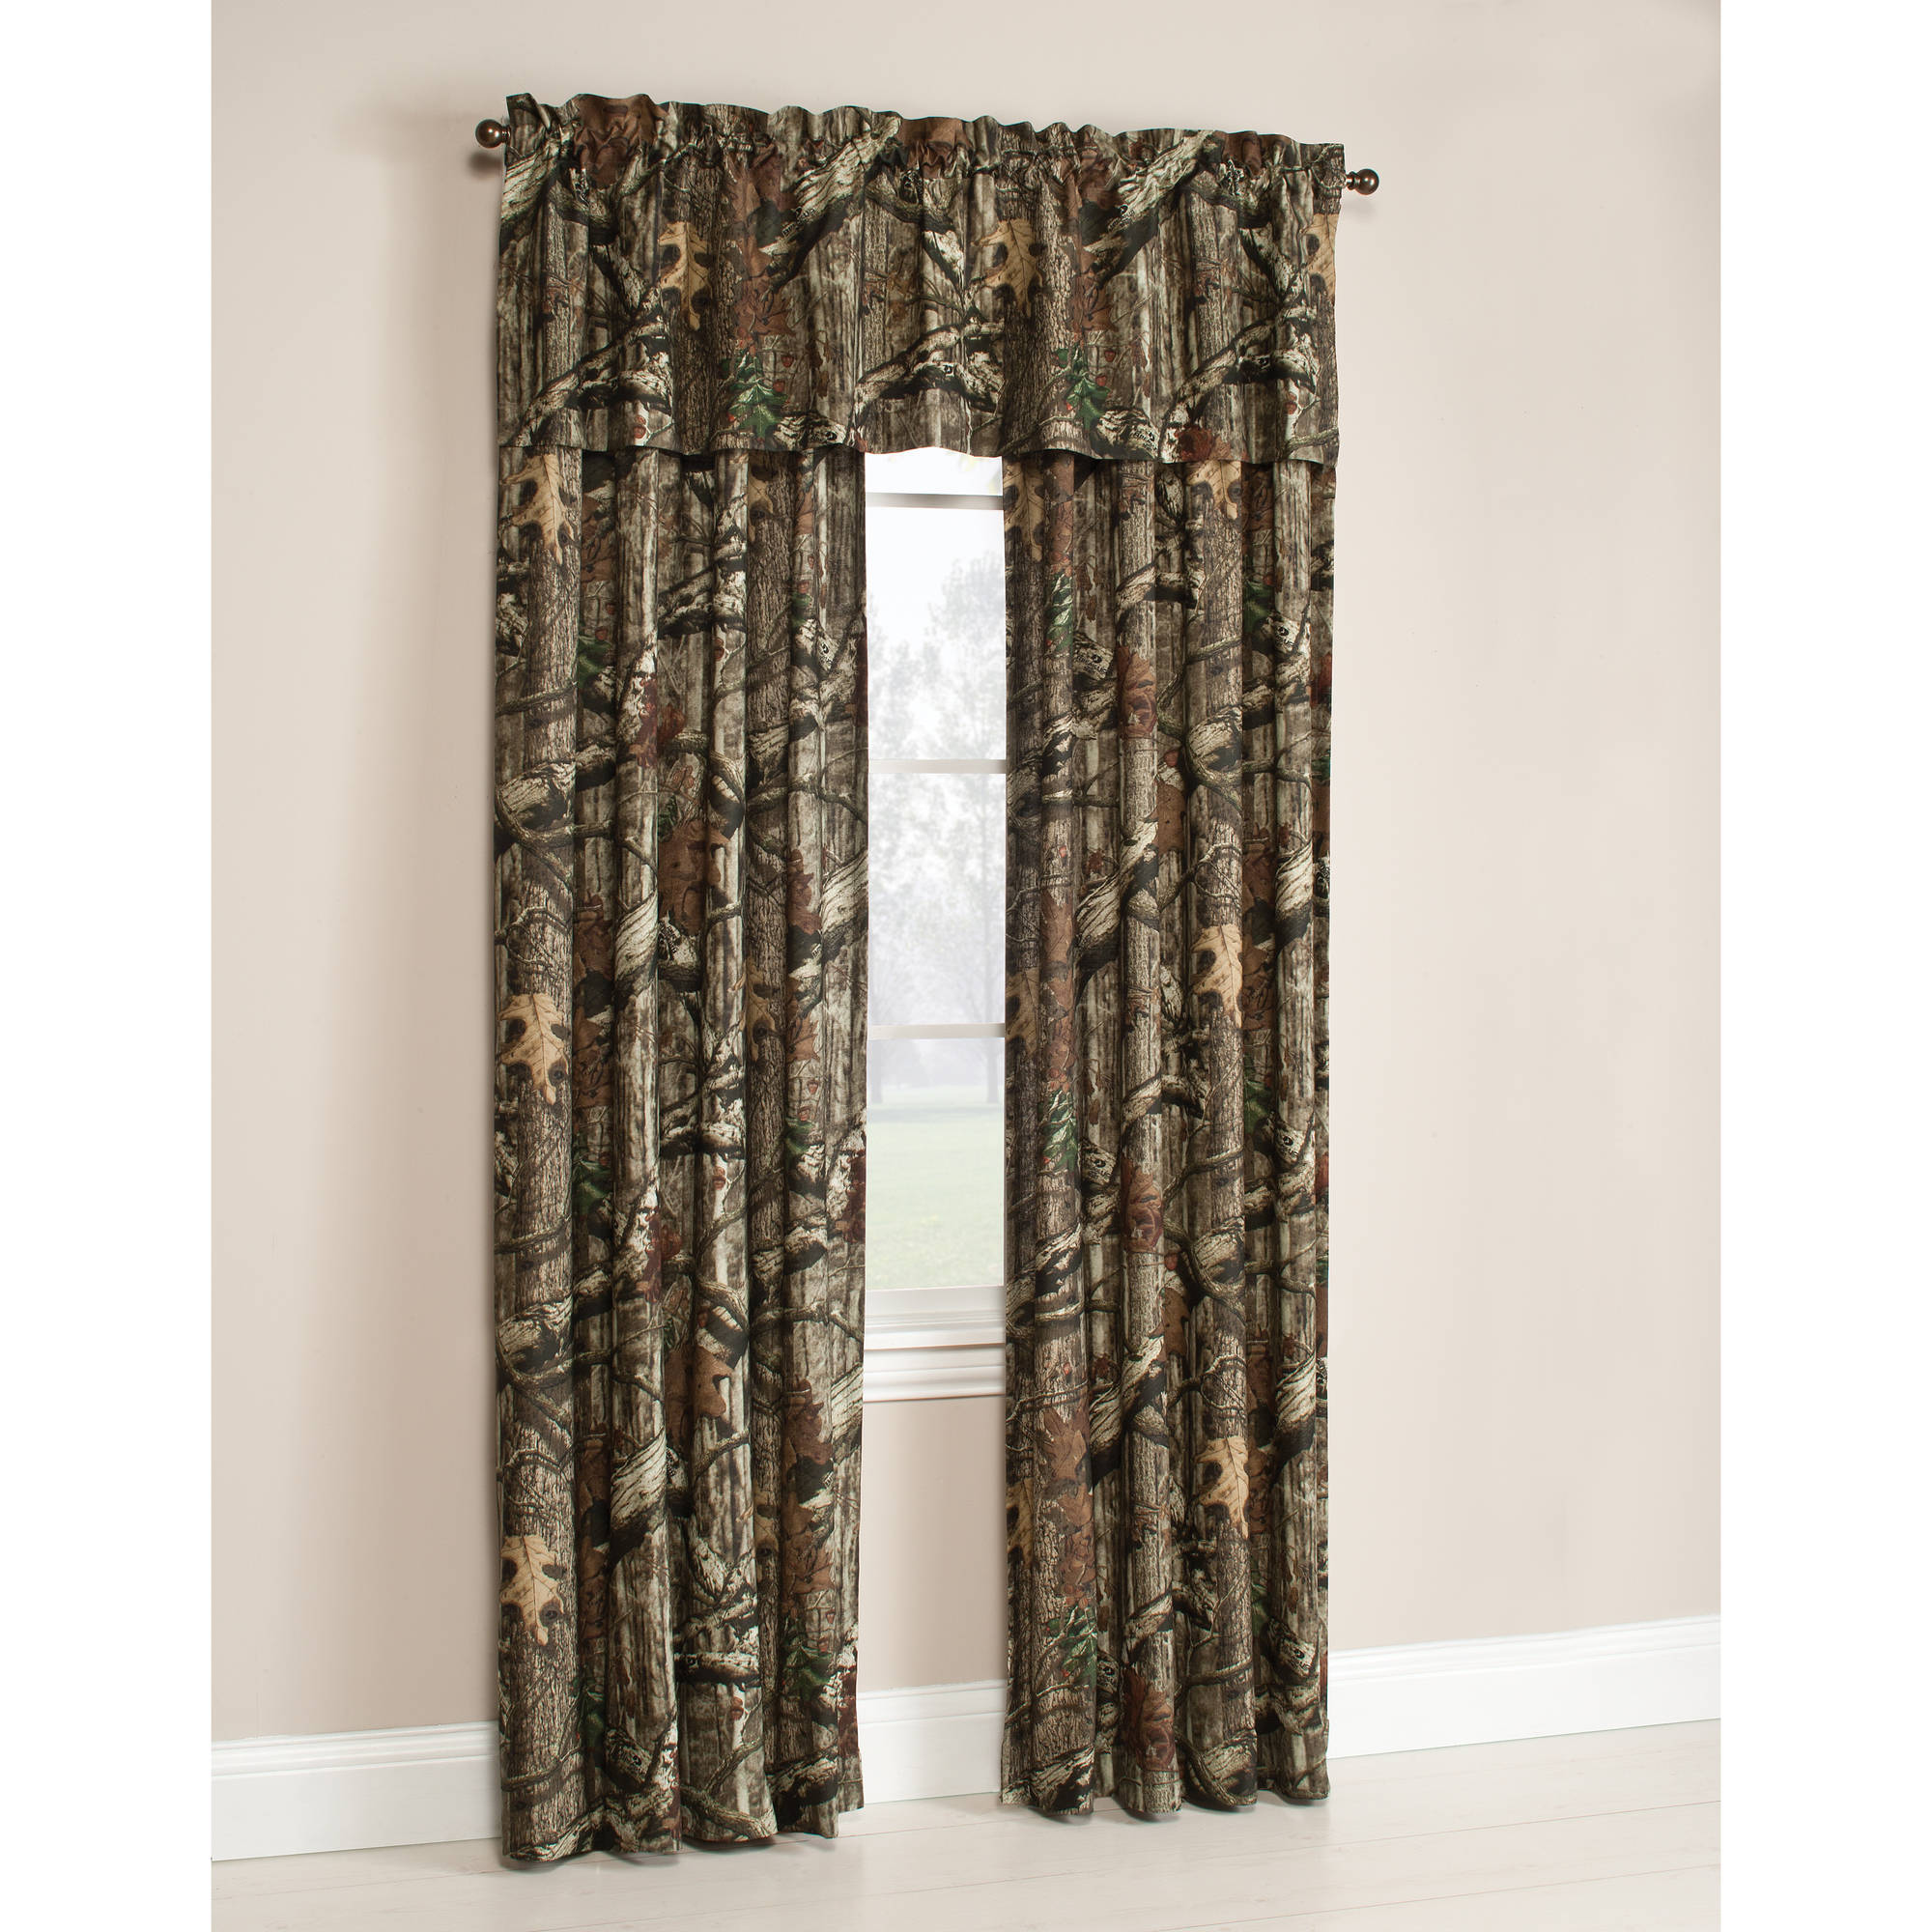 Country curtains logo - Mossy Oak Break Up Infinity Camouflage Print Window Curtain Panels